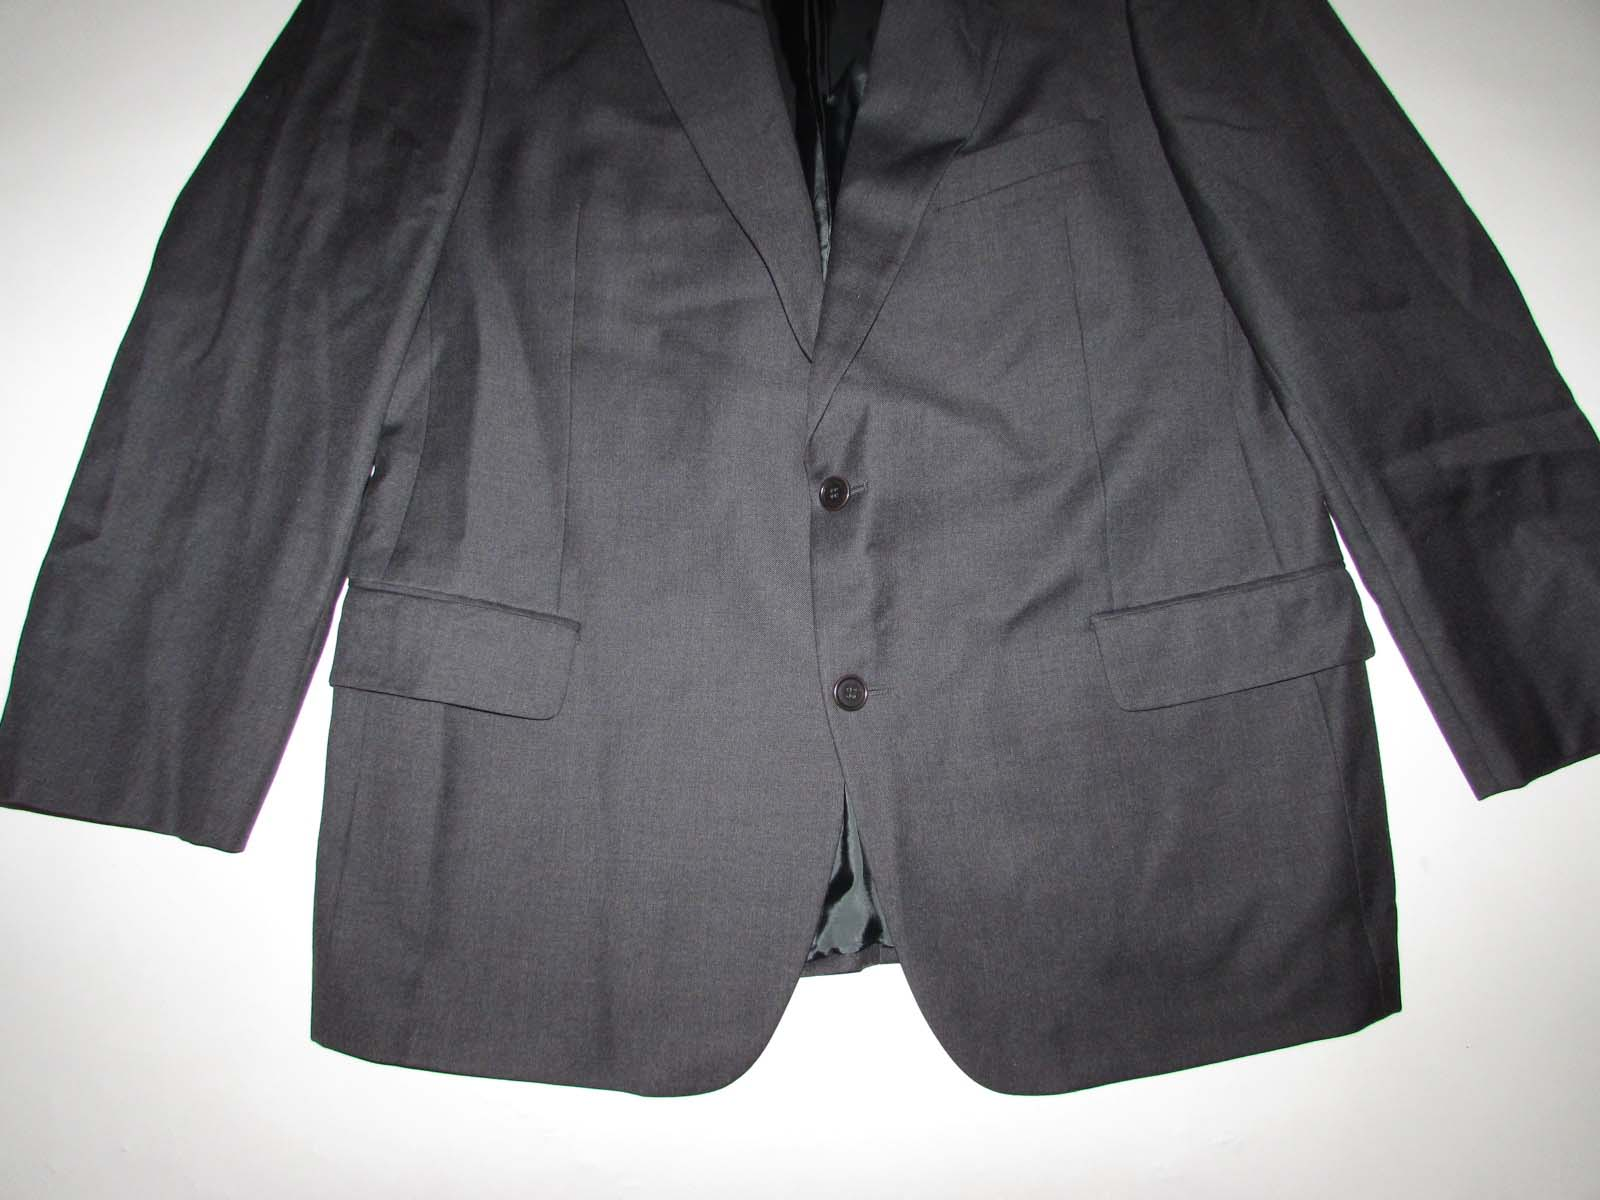 99c32172 Details about Ermenegildo Zegna Dalton Forsythe Men's Blazer Size 46  Regular Gray Wool Jacket